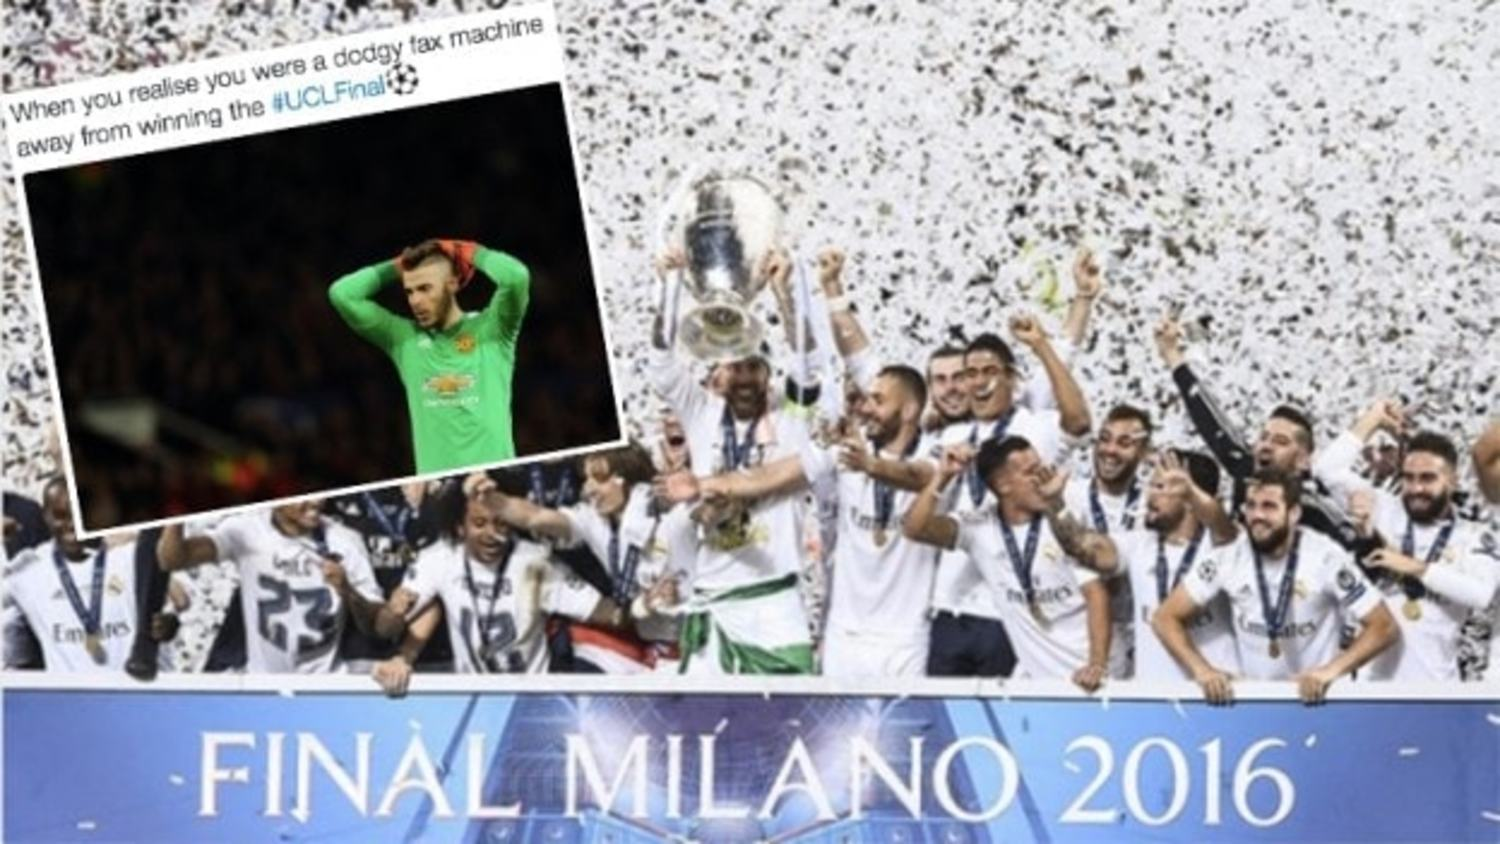 How the internet reacted to Real Madrid's Champions League Victory